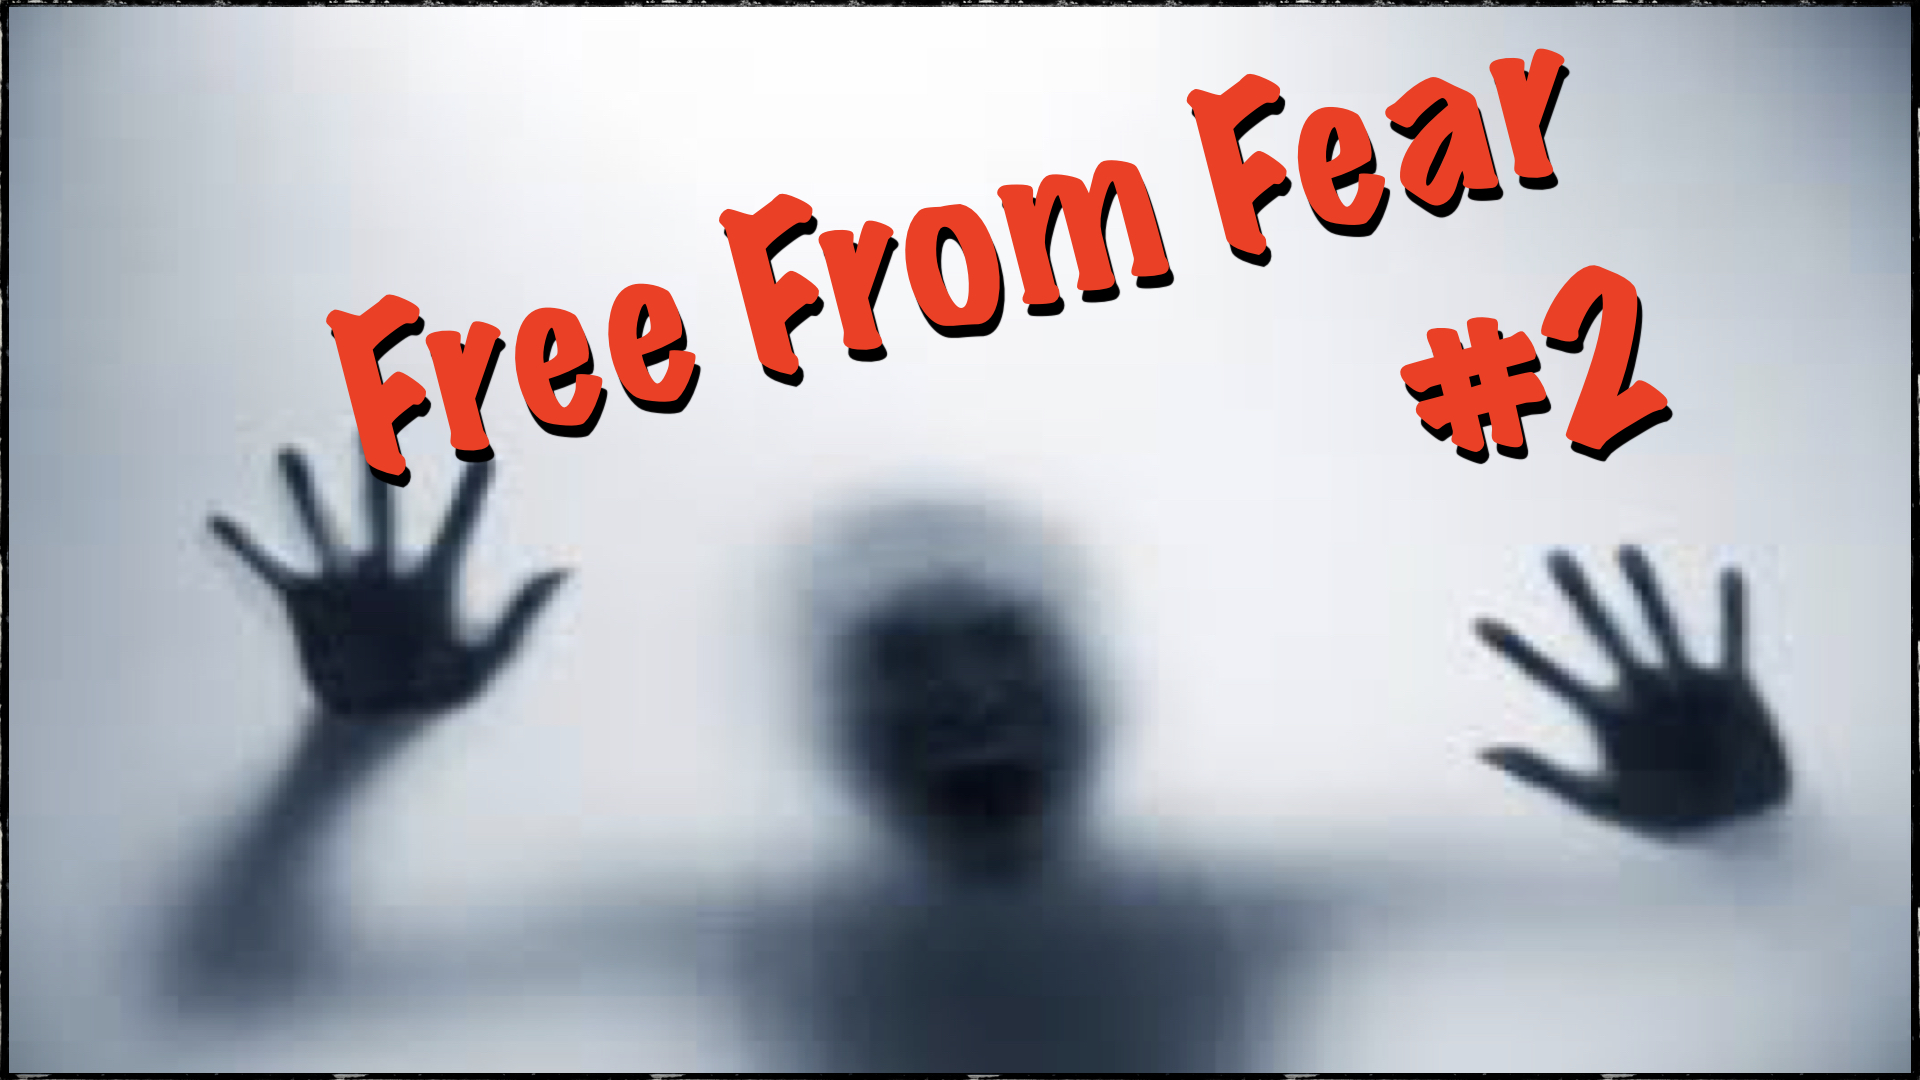 Free From Fear 2 272018 45051 PM